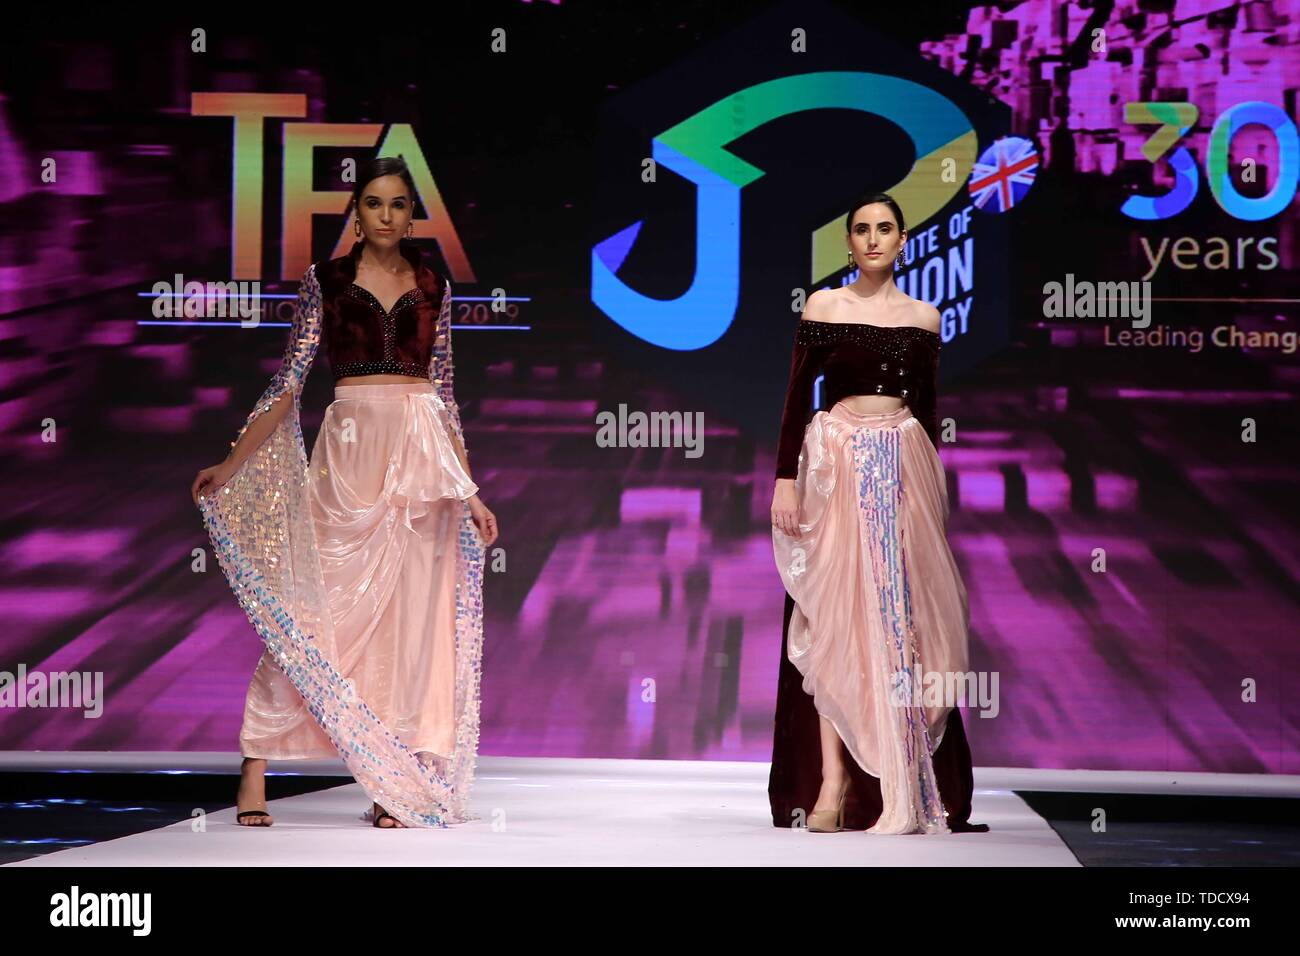 New Delhi India 14th June 2019 Models Walk On The Ramp And Presenting Collection Of Jd Institute Of Fashion And Technology During The The Fashion Award 2019 Credit Jyoti Kapoor Pacific Press Alamy Live